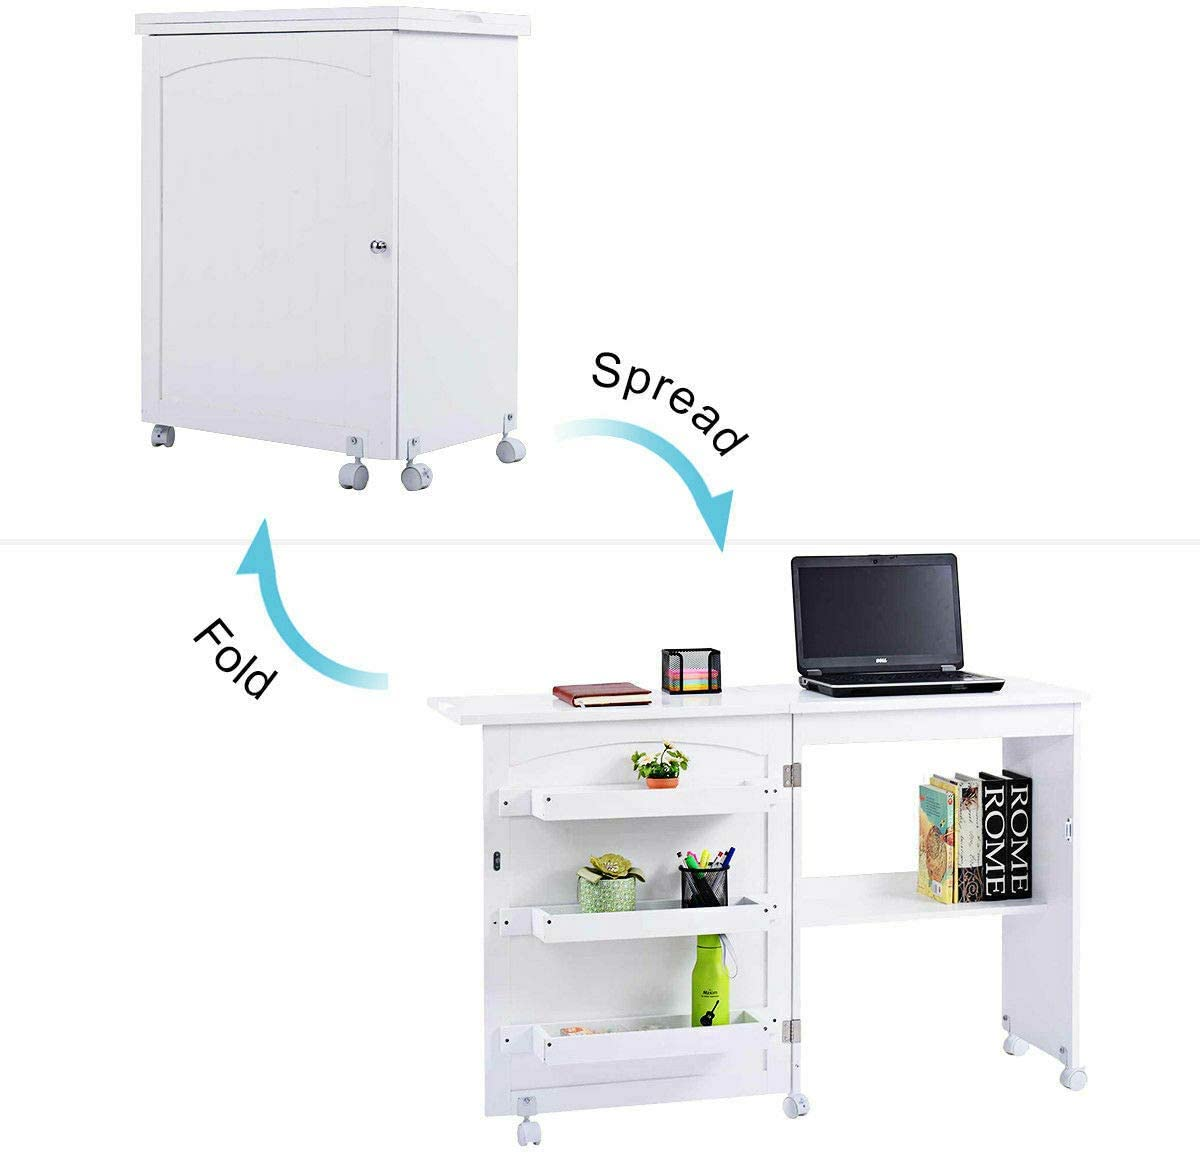 White Foldable Sewing Table Cabinet 3 Storage Bins for Placing Sewing Tools Extra Storage Shelf for Sewing Machine Multifunctional Design Can Be Used As Computer Desk Laptop Notebook Table